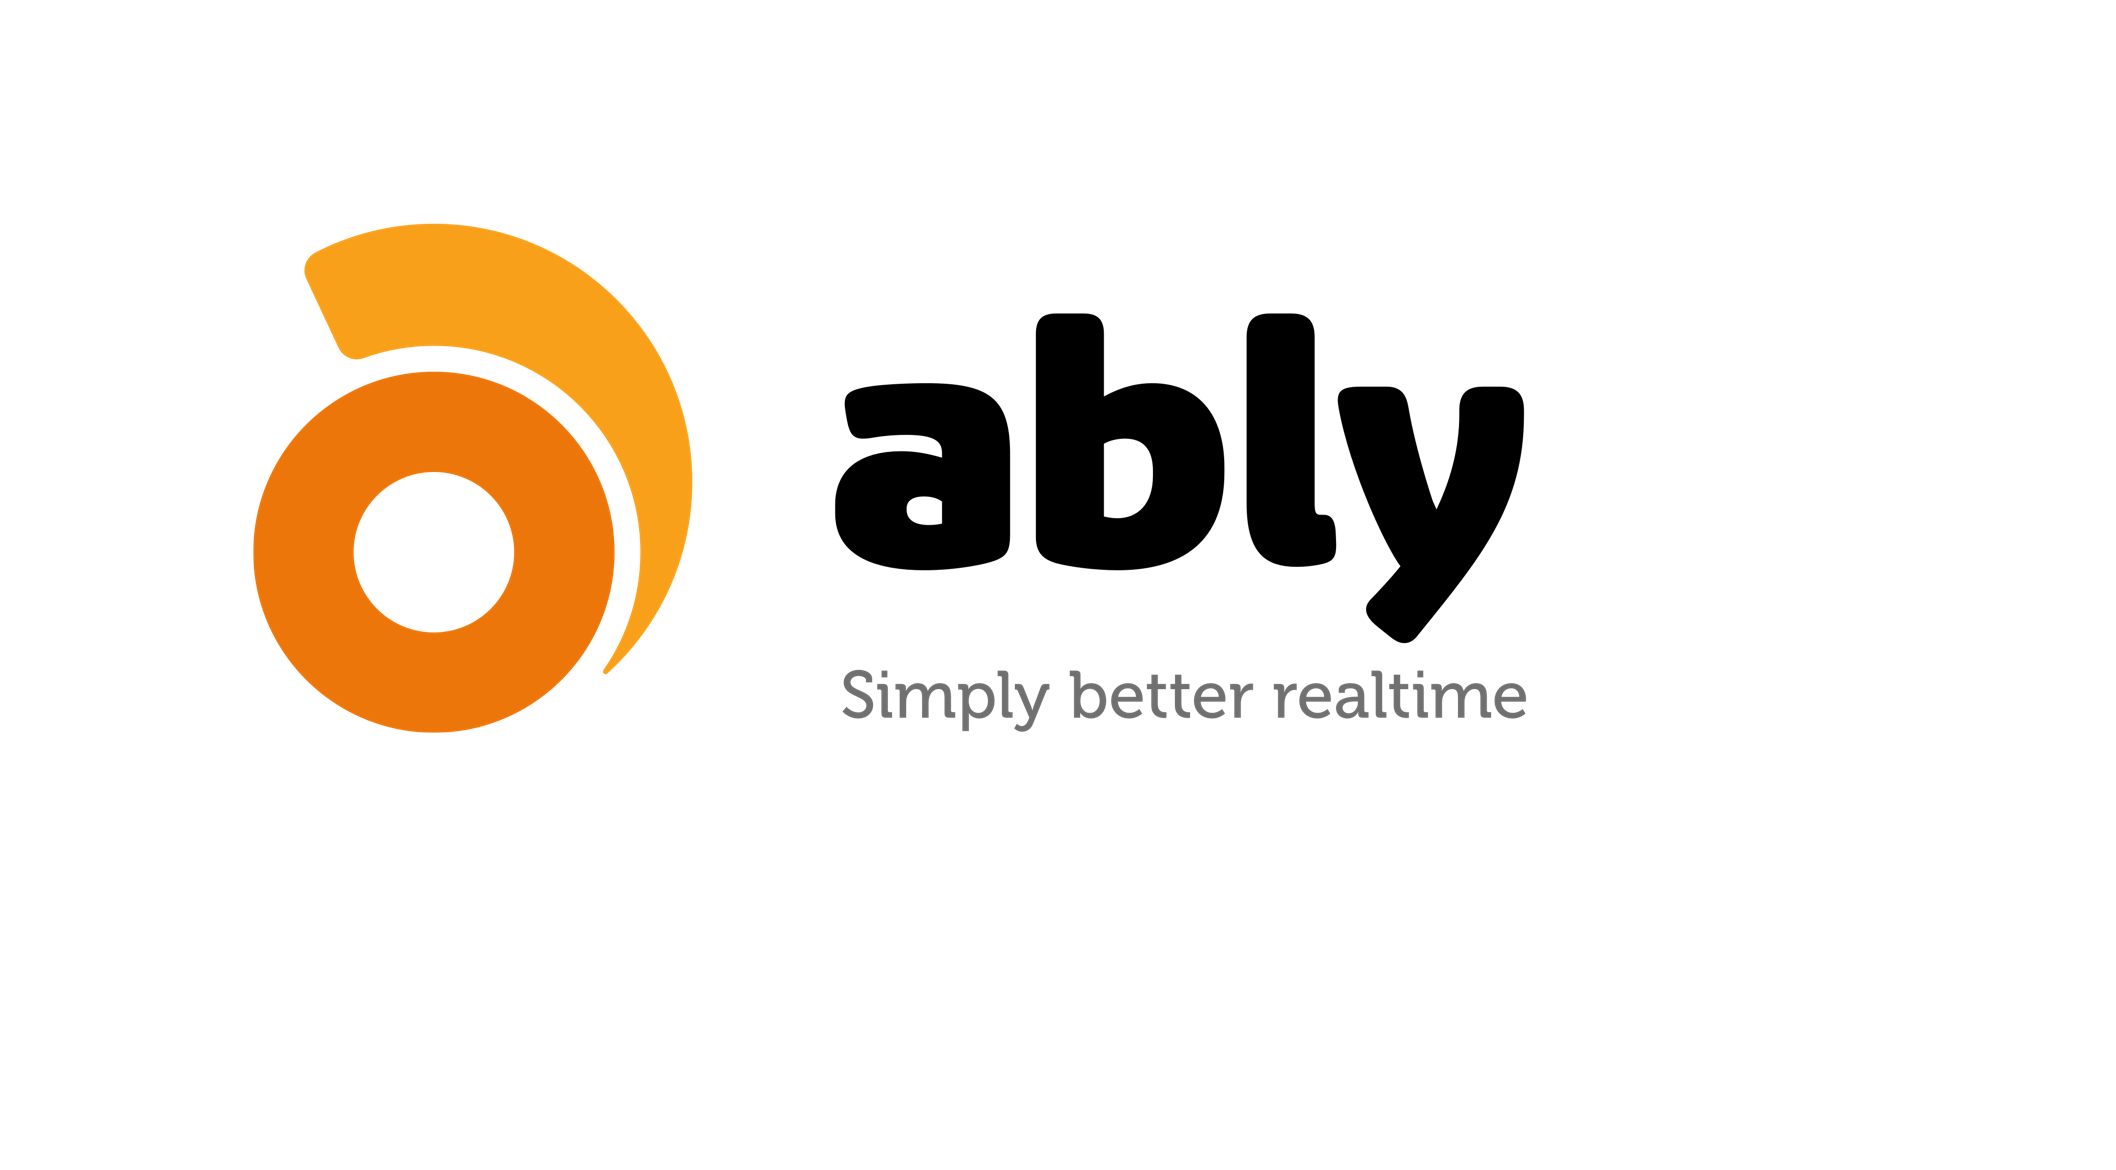 Ably's enterprise packages for customers with demanding realtime needs